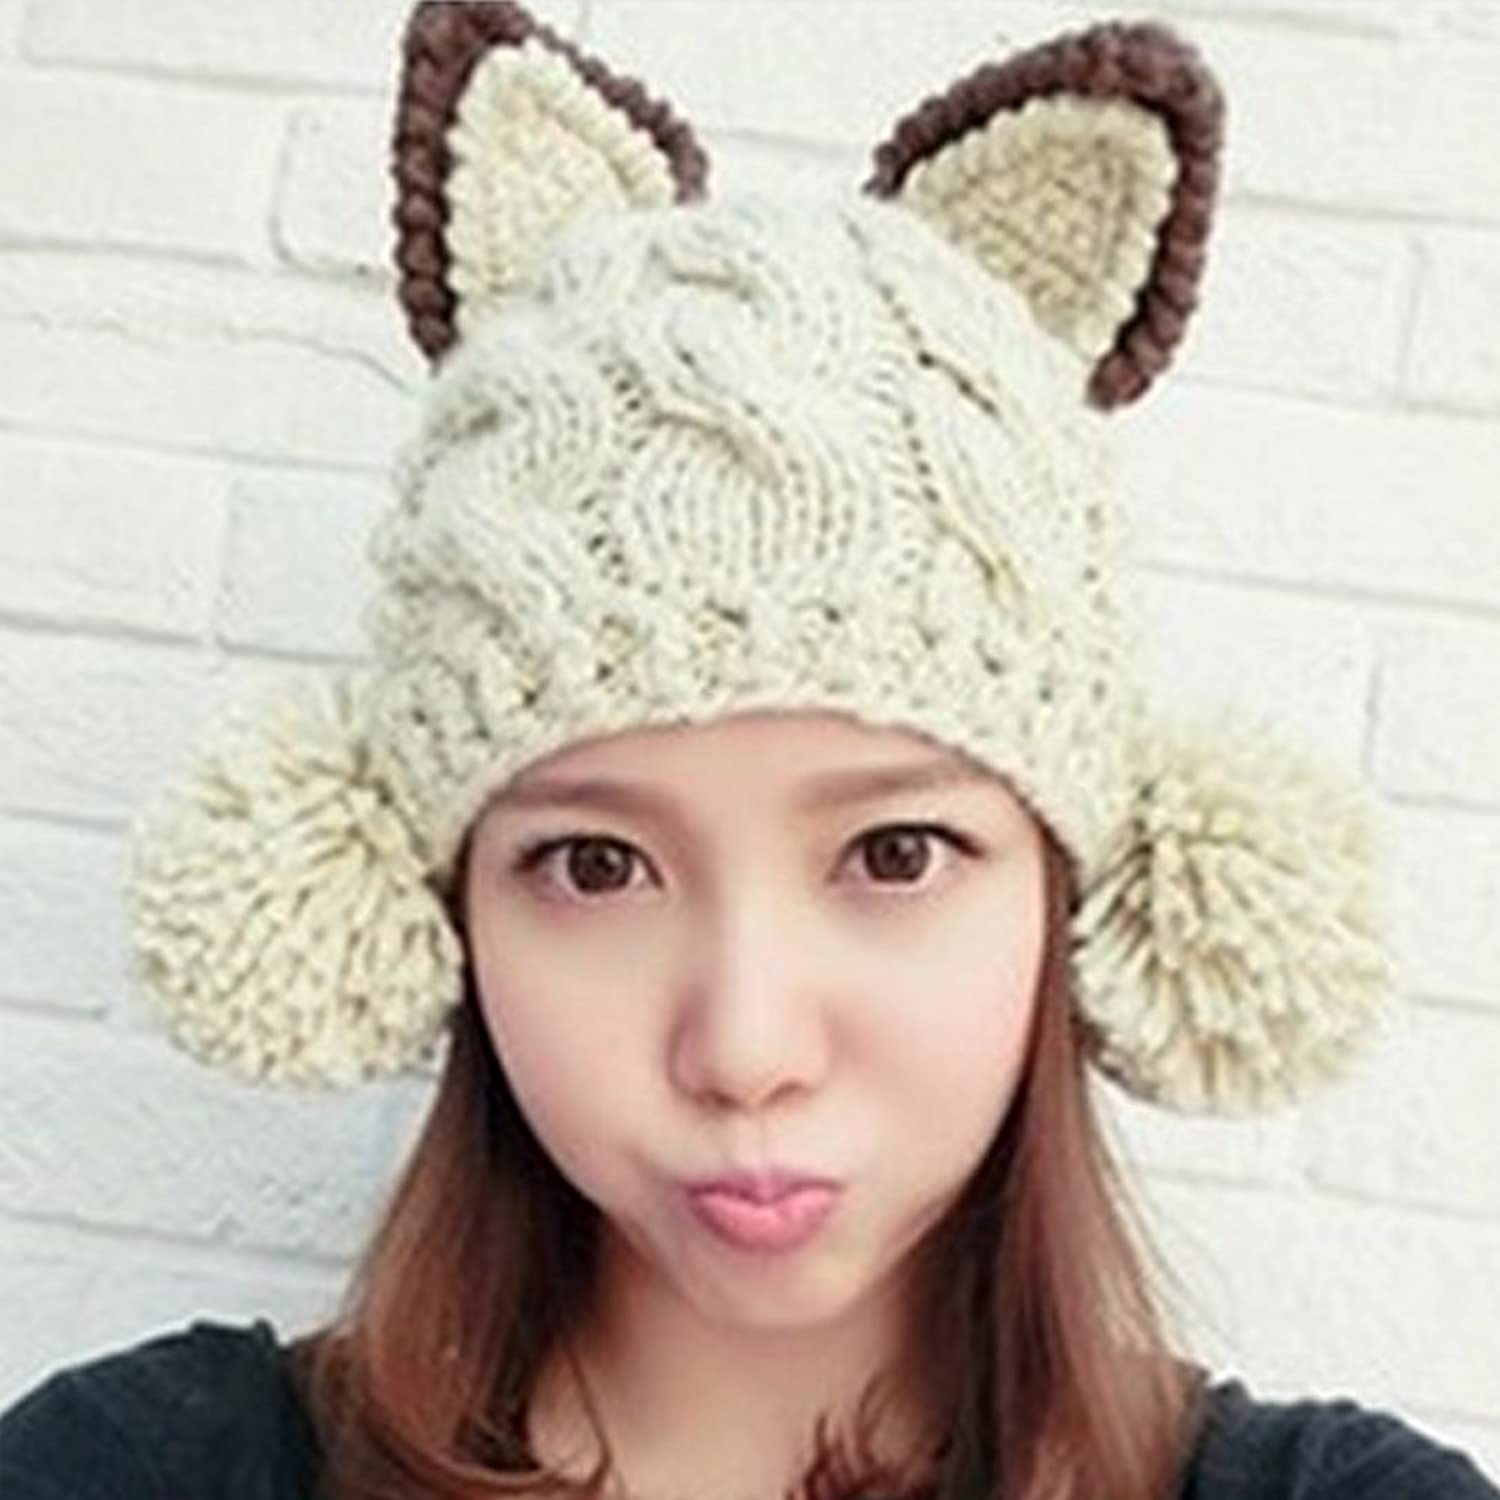 LOCOMO Cat Ear Pom Pom Cabled Knit Beanie Crochet Rib Hat Brim Cap ...